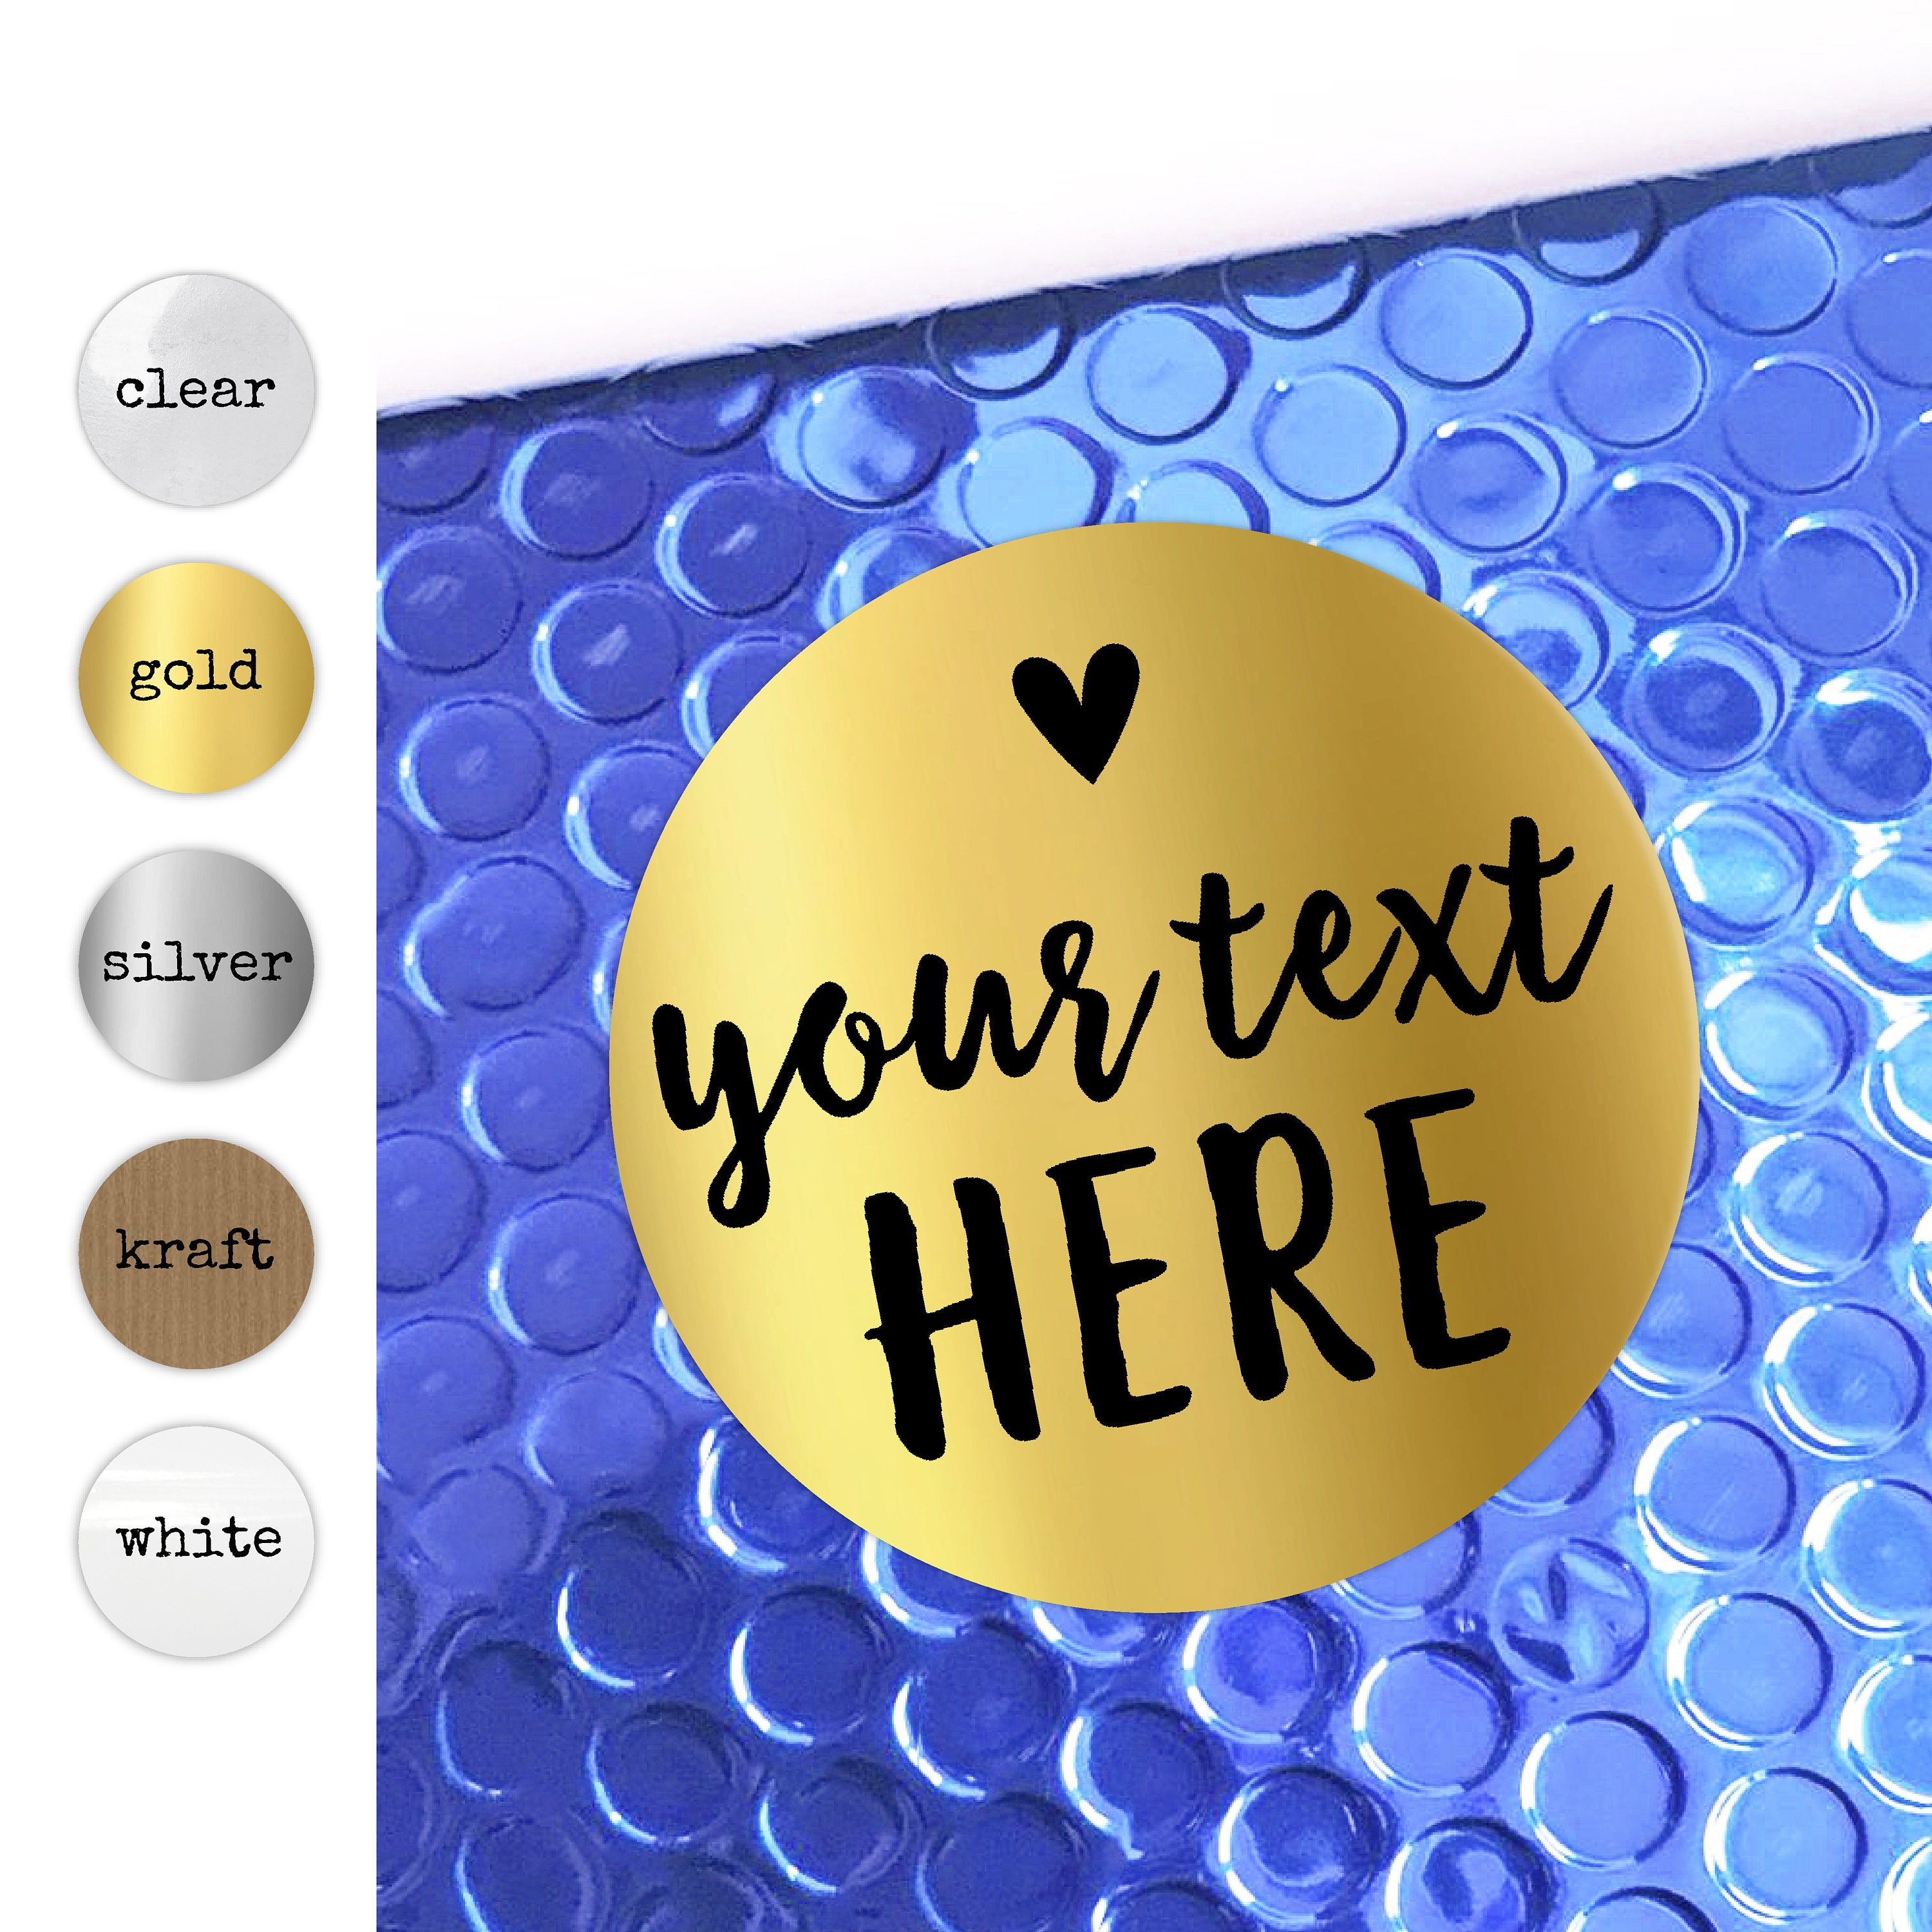 Custom product label stickers custom logo stickers sheet round packaging stickers labels custom text stickers your text here stickers